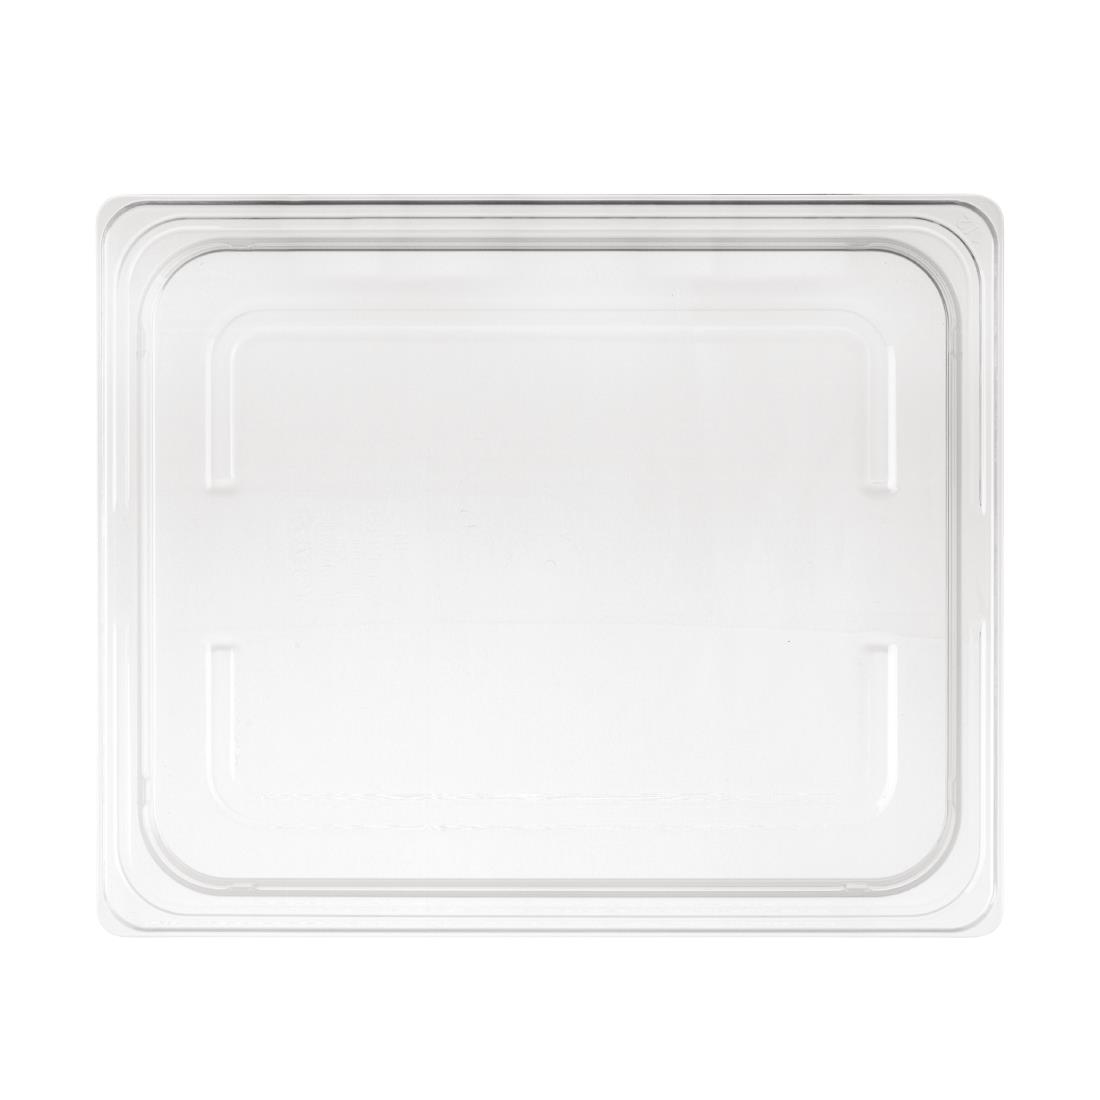 Image of Nisbets Essentials Polypropylene 1/2 Gastronorm Lid Clear